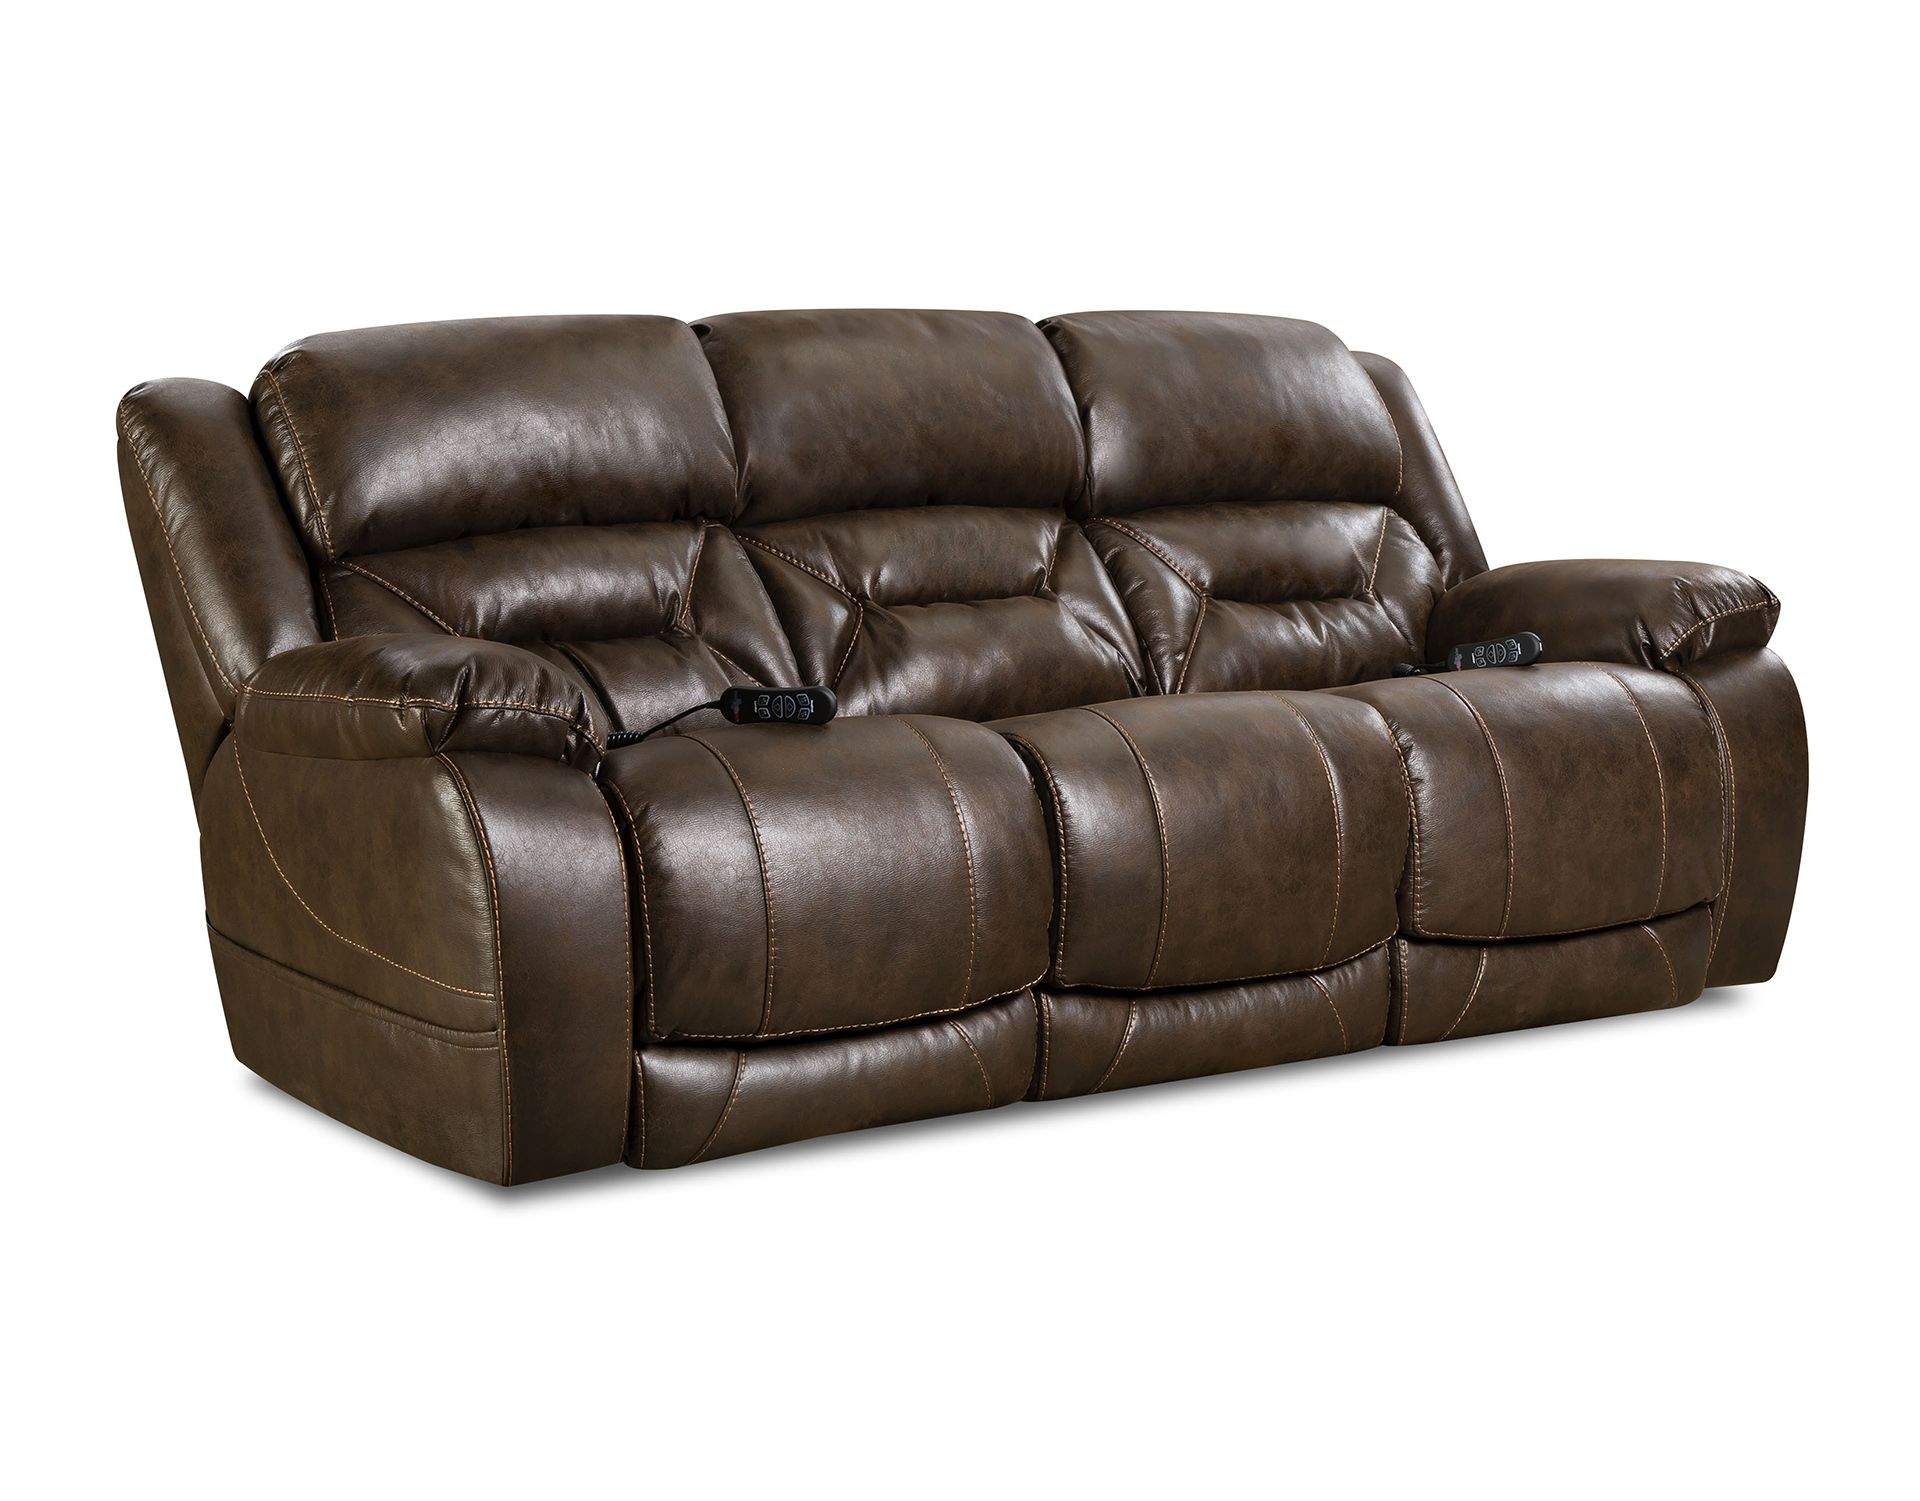 Double Reclining Power Sofa From Homestretch Power Reclining